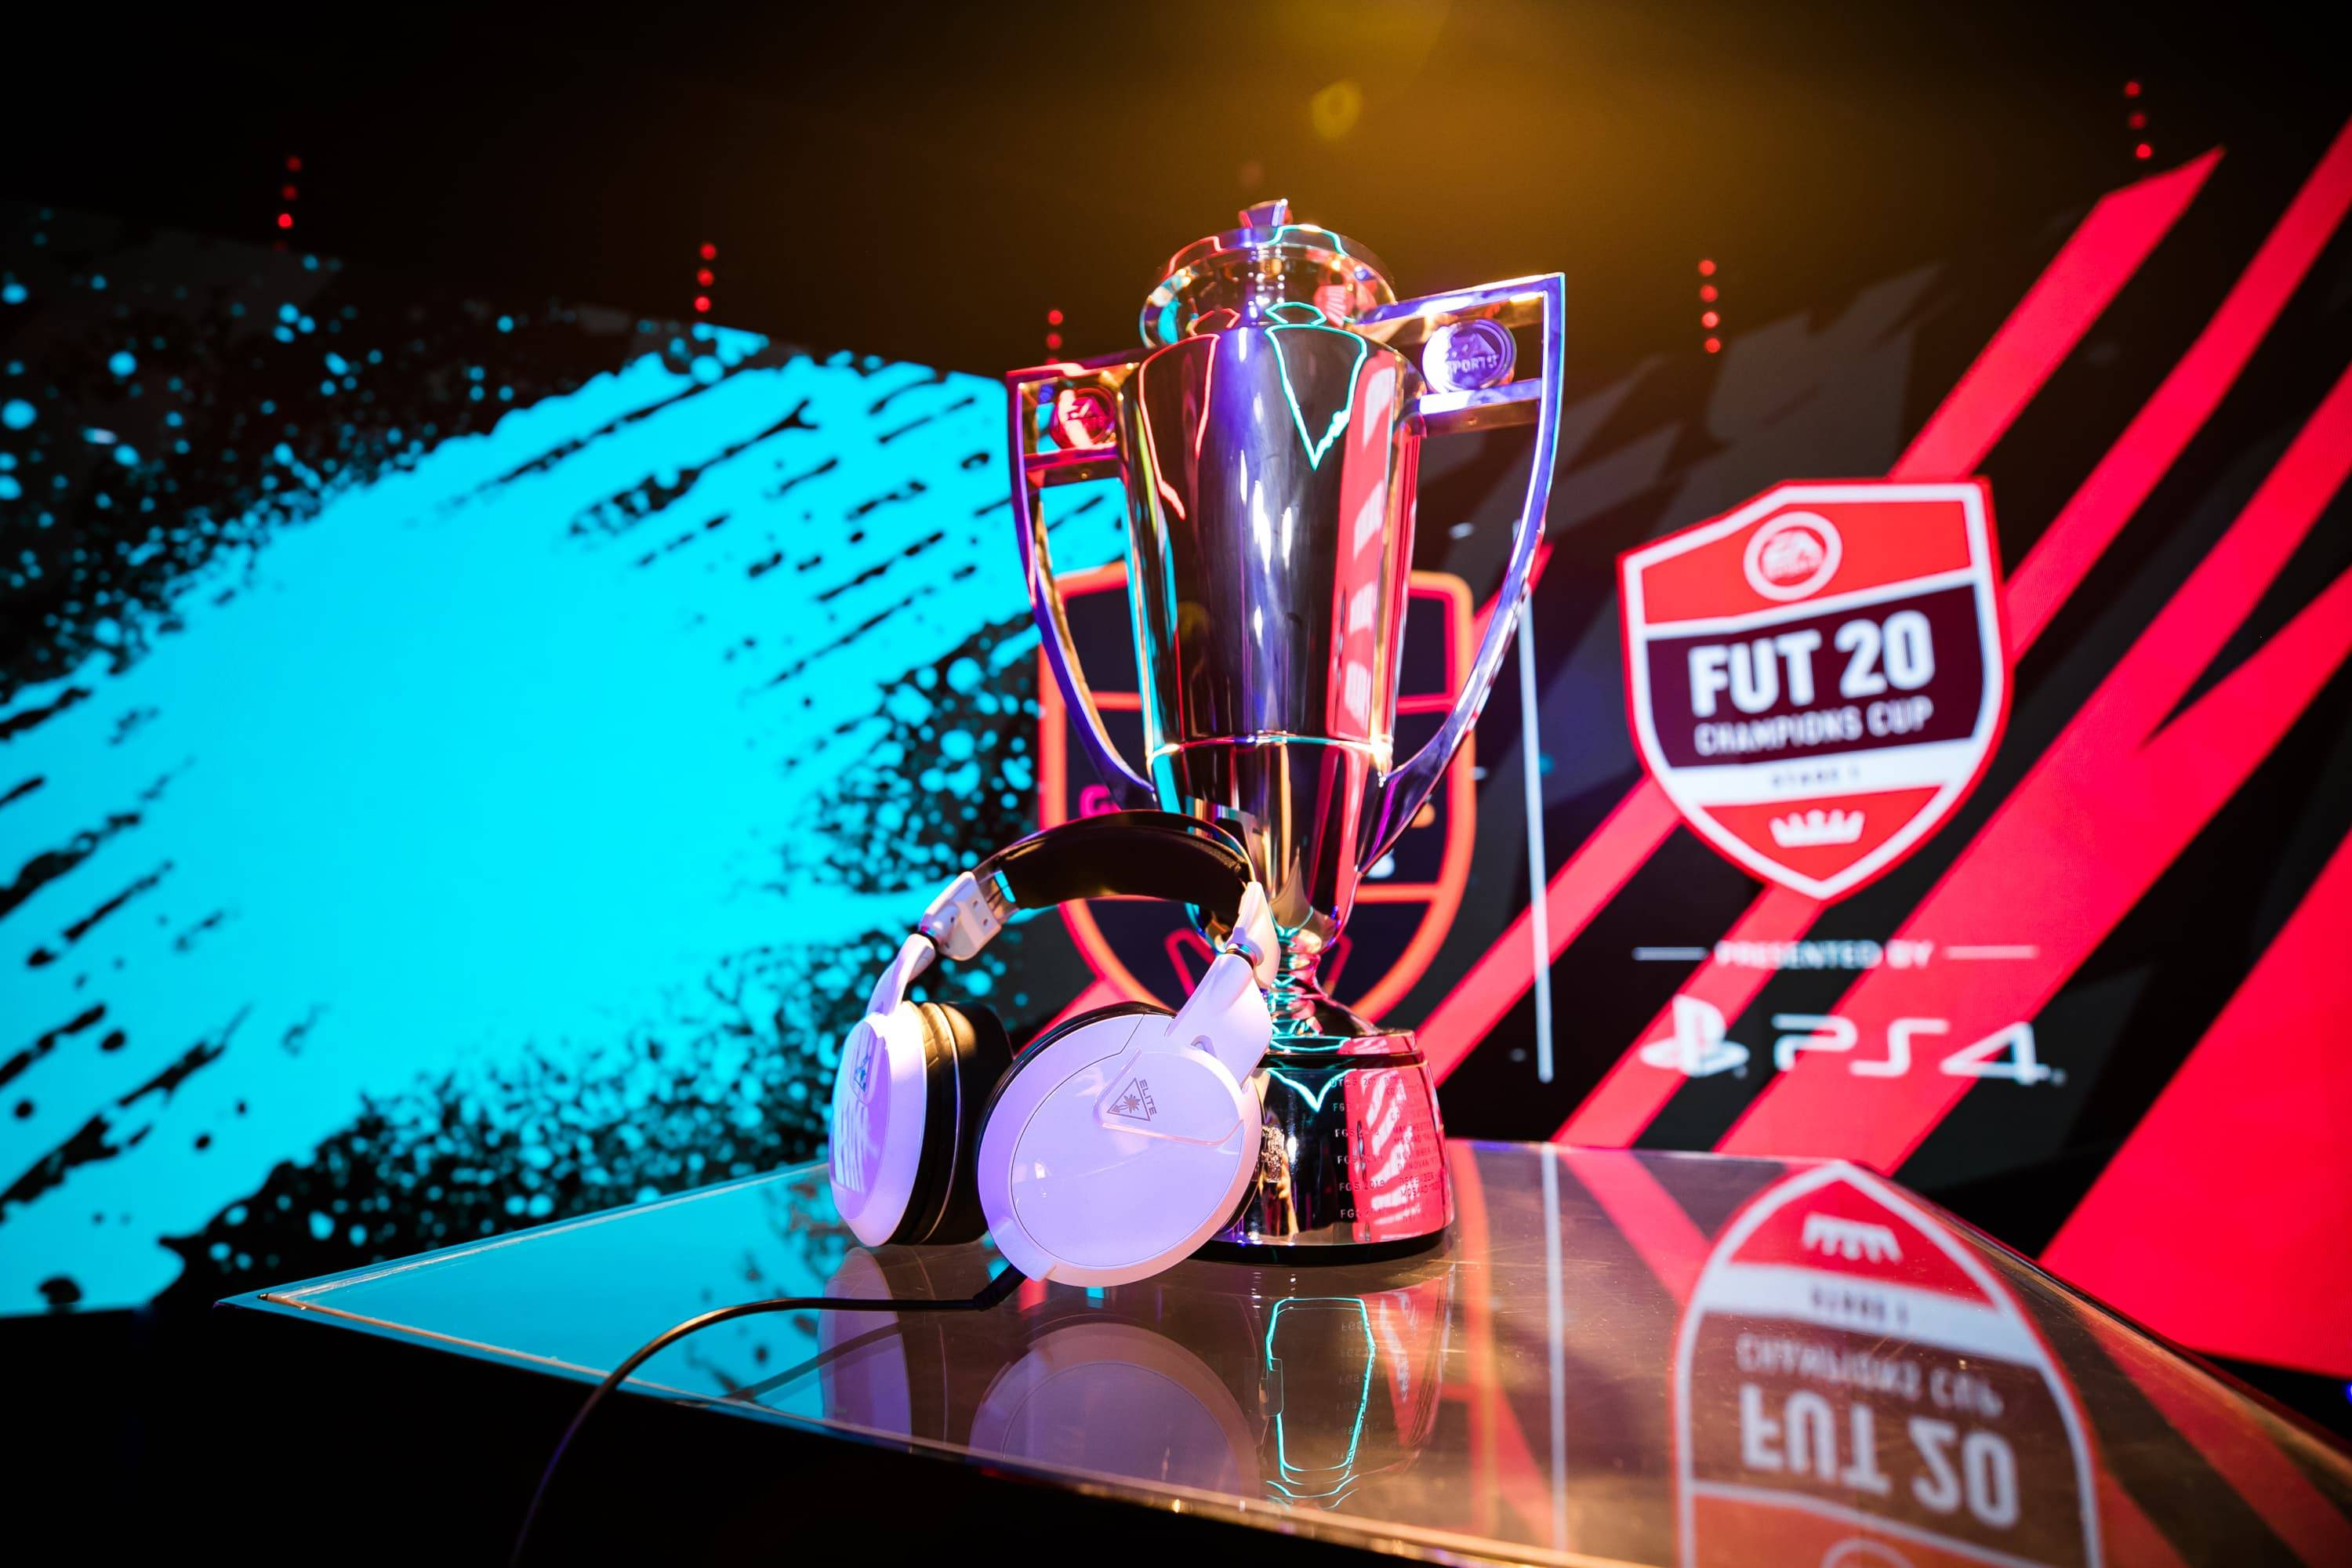 turtle beach elite pro 2 headset and EA sports trophy